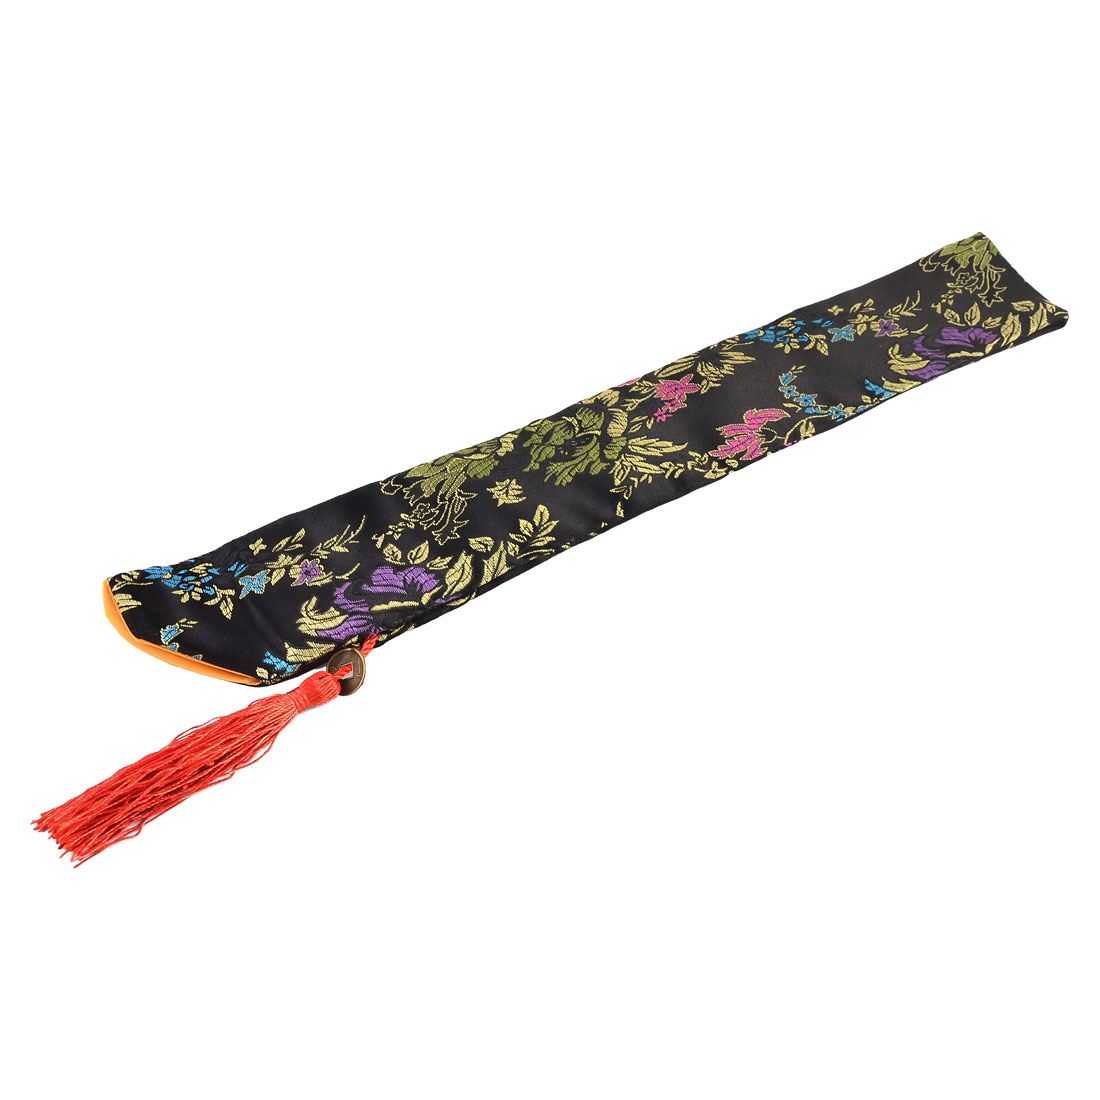 Chinese Classic Style Silk Blend Floral Pattern Folding Hand Fan Fabric Sleeve Pouch Cover Bag